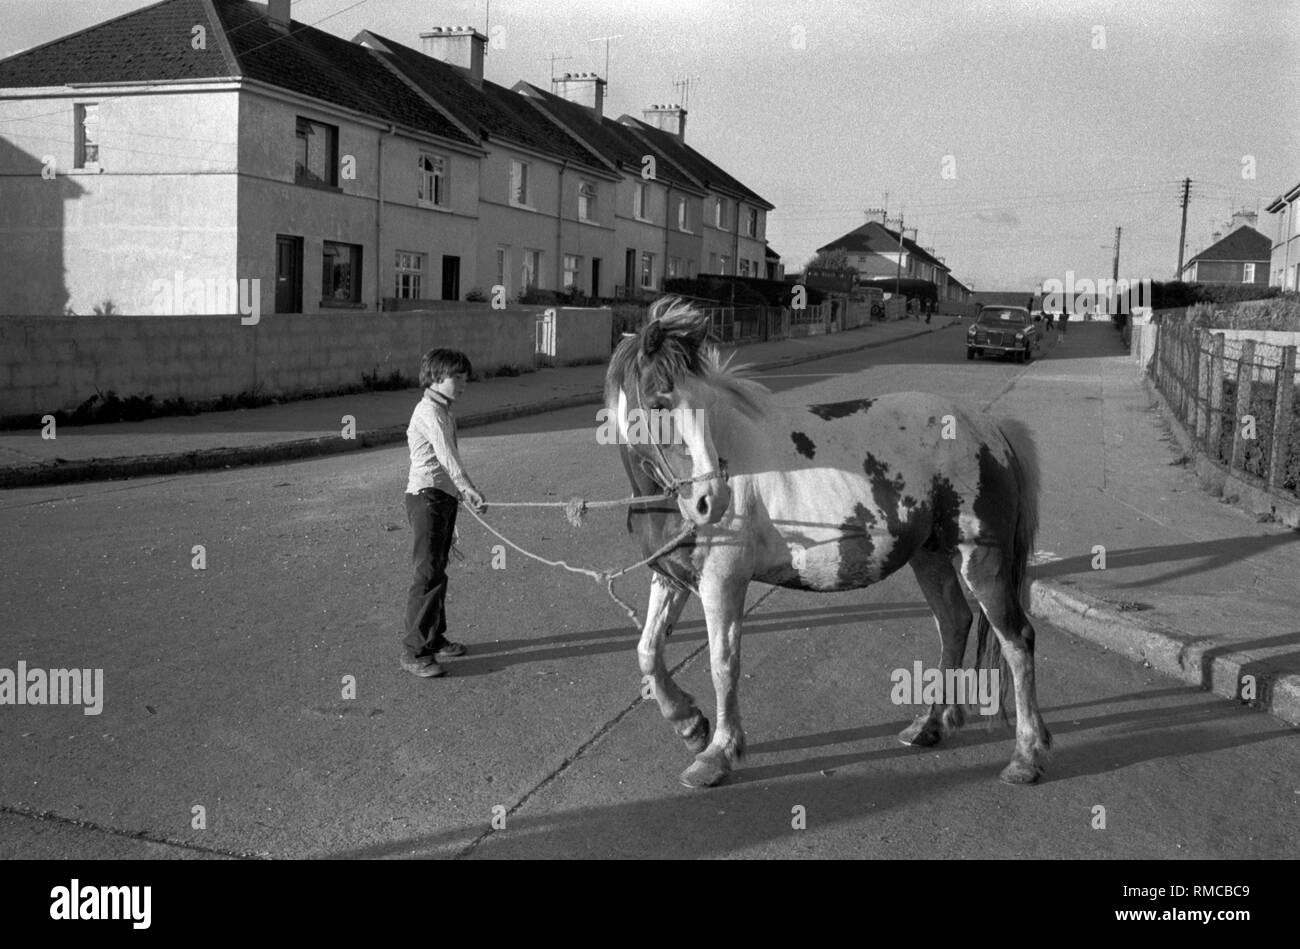 1970s Irish teen with pet urban horse Limerick, in County Limerick, Eire.  West Coast of Southern Ireland 70s The newly built  South Hill estate. HOMER SYKES - Stock Image